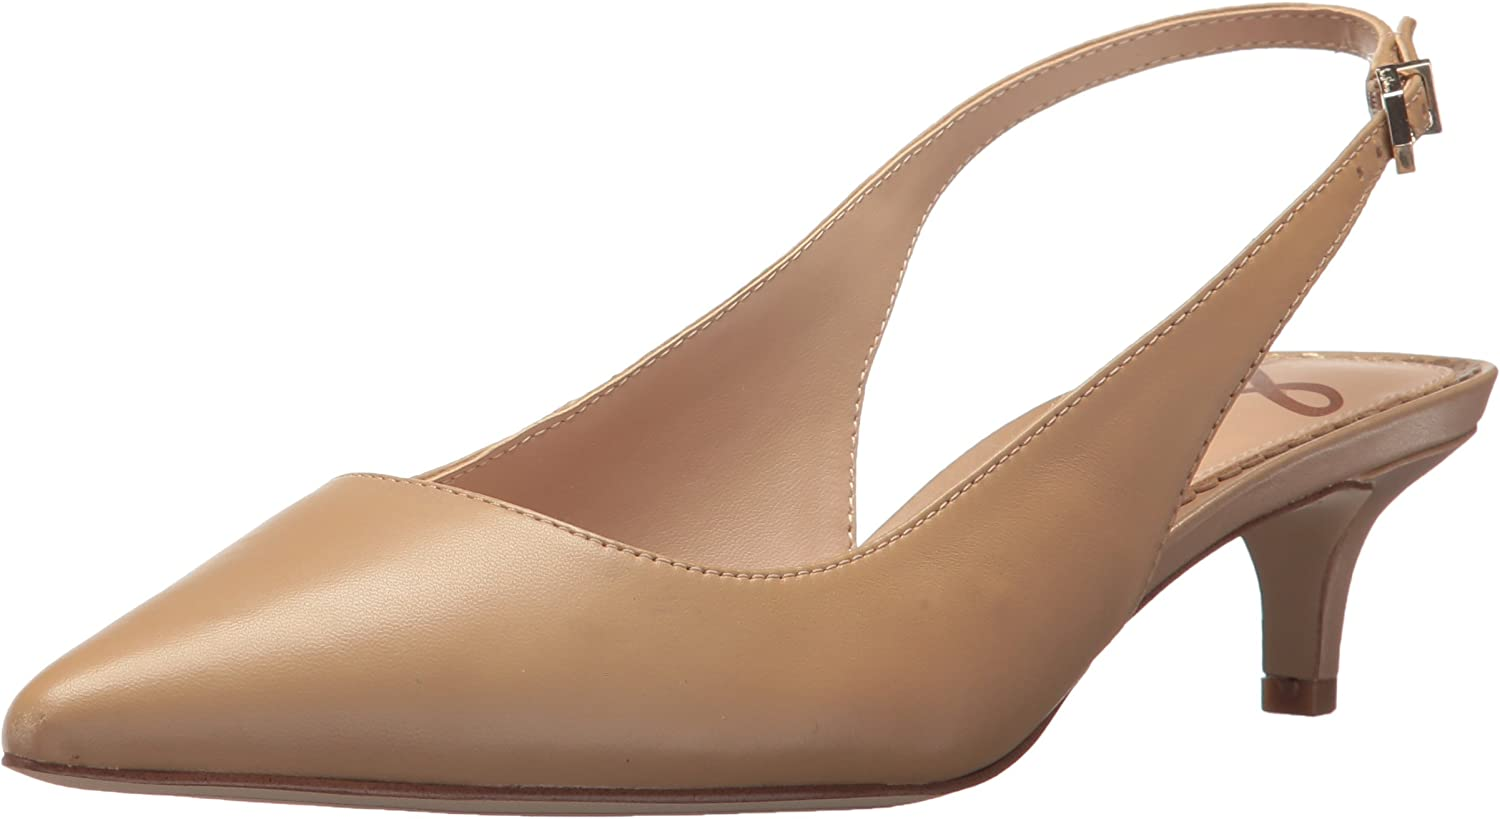 Sam Edelman Women's Ludlow Pumps